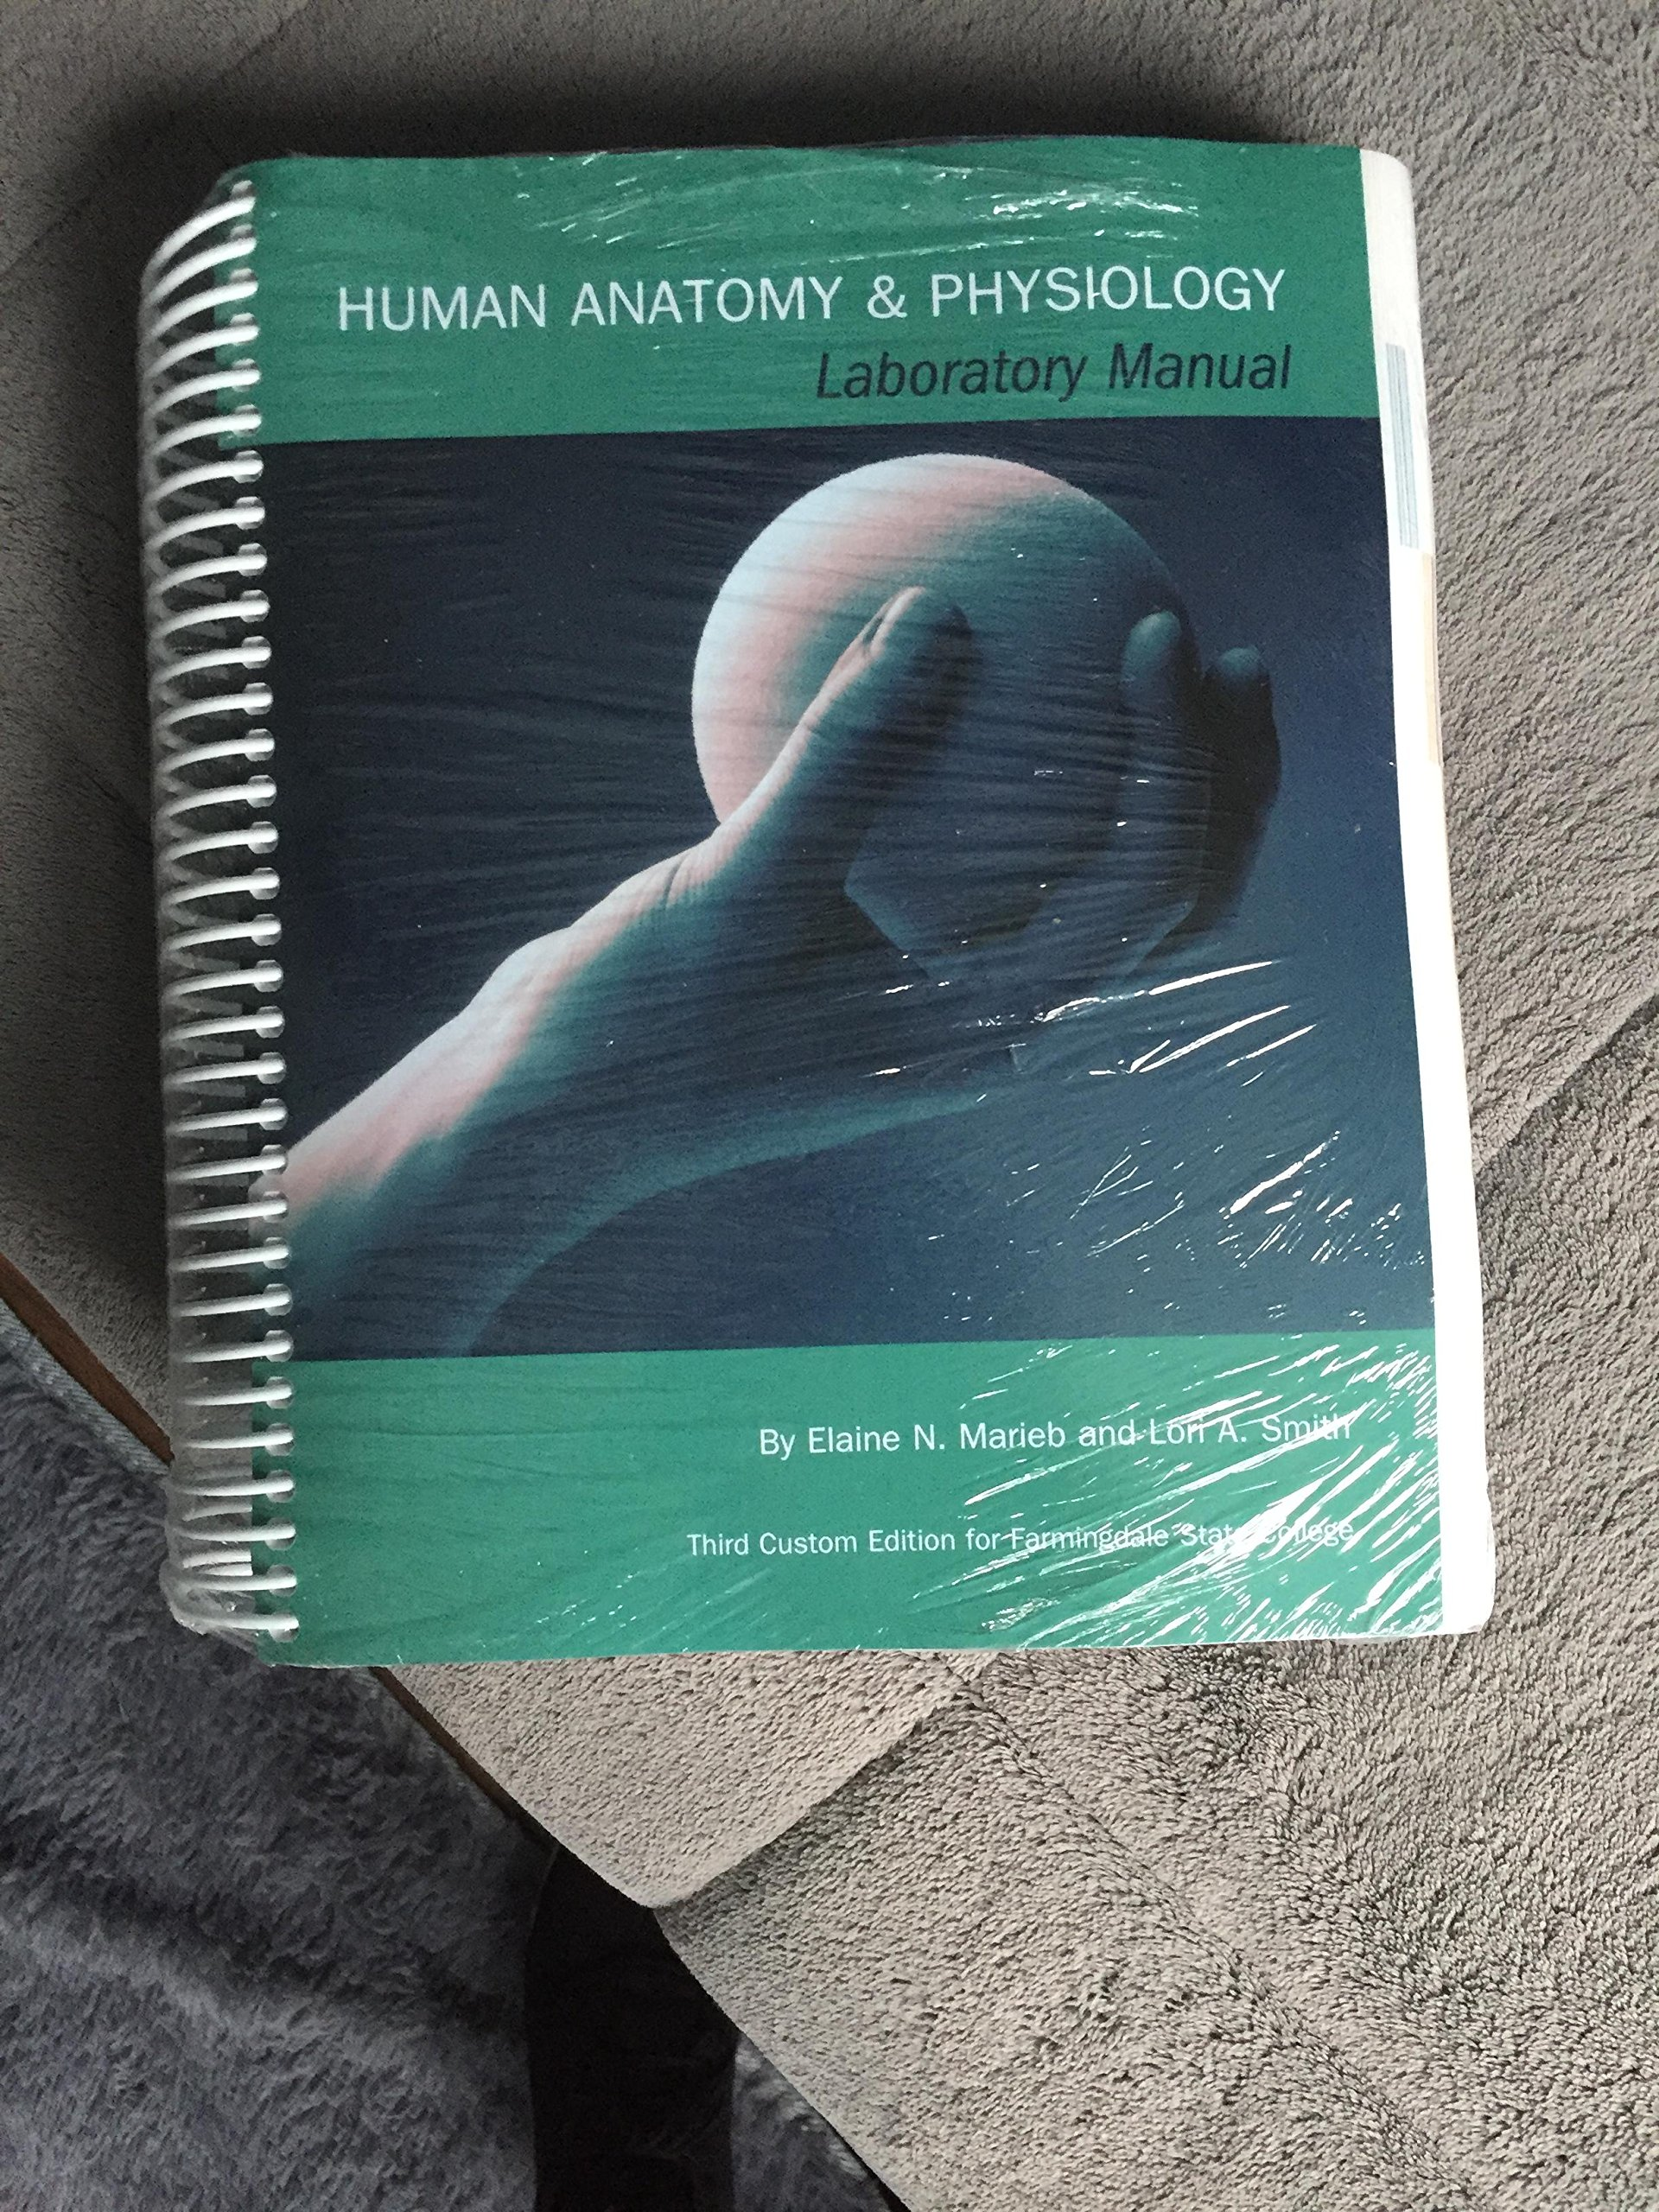 Human Anatomy & Physiology Lab Manual: Elaine N. Marieb, Lori A ...